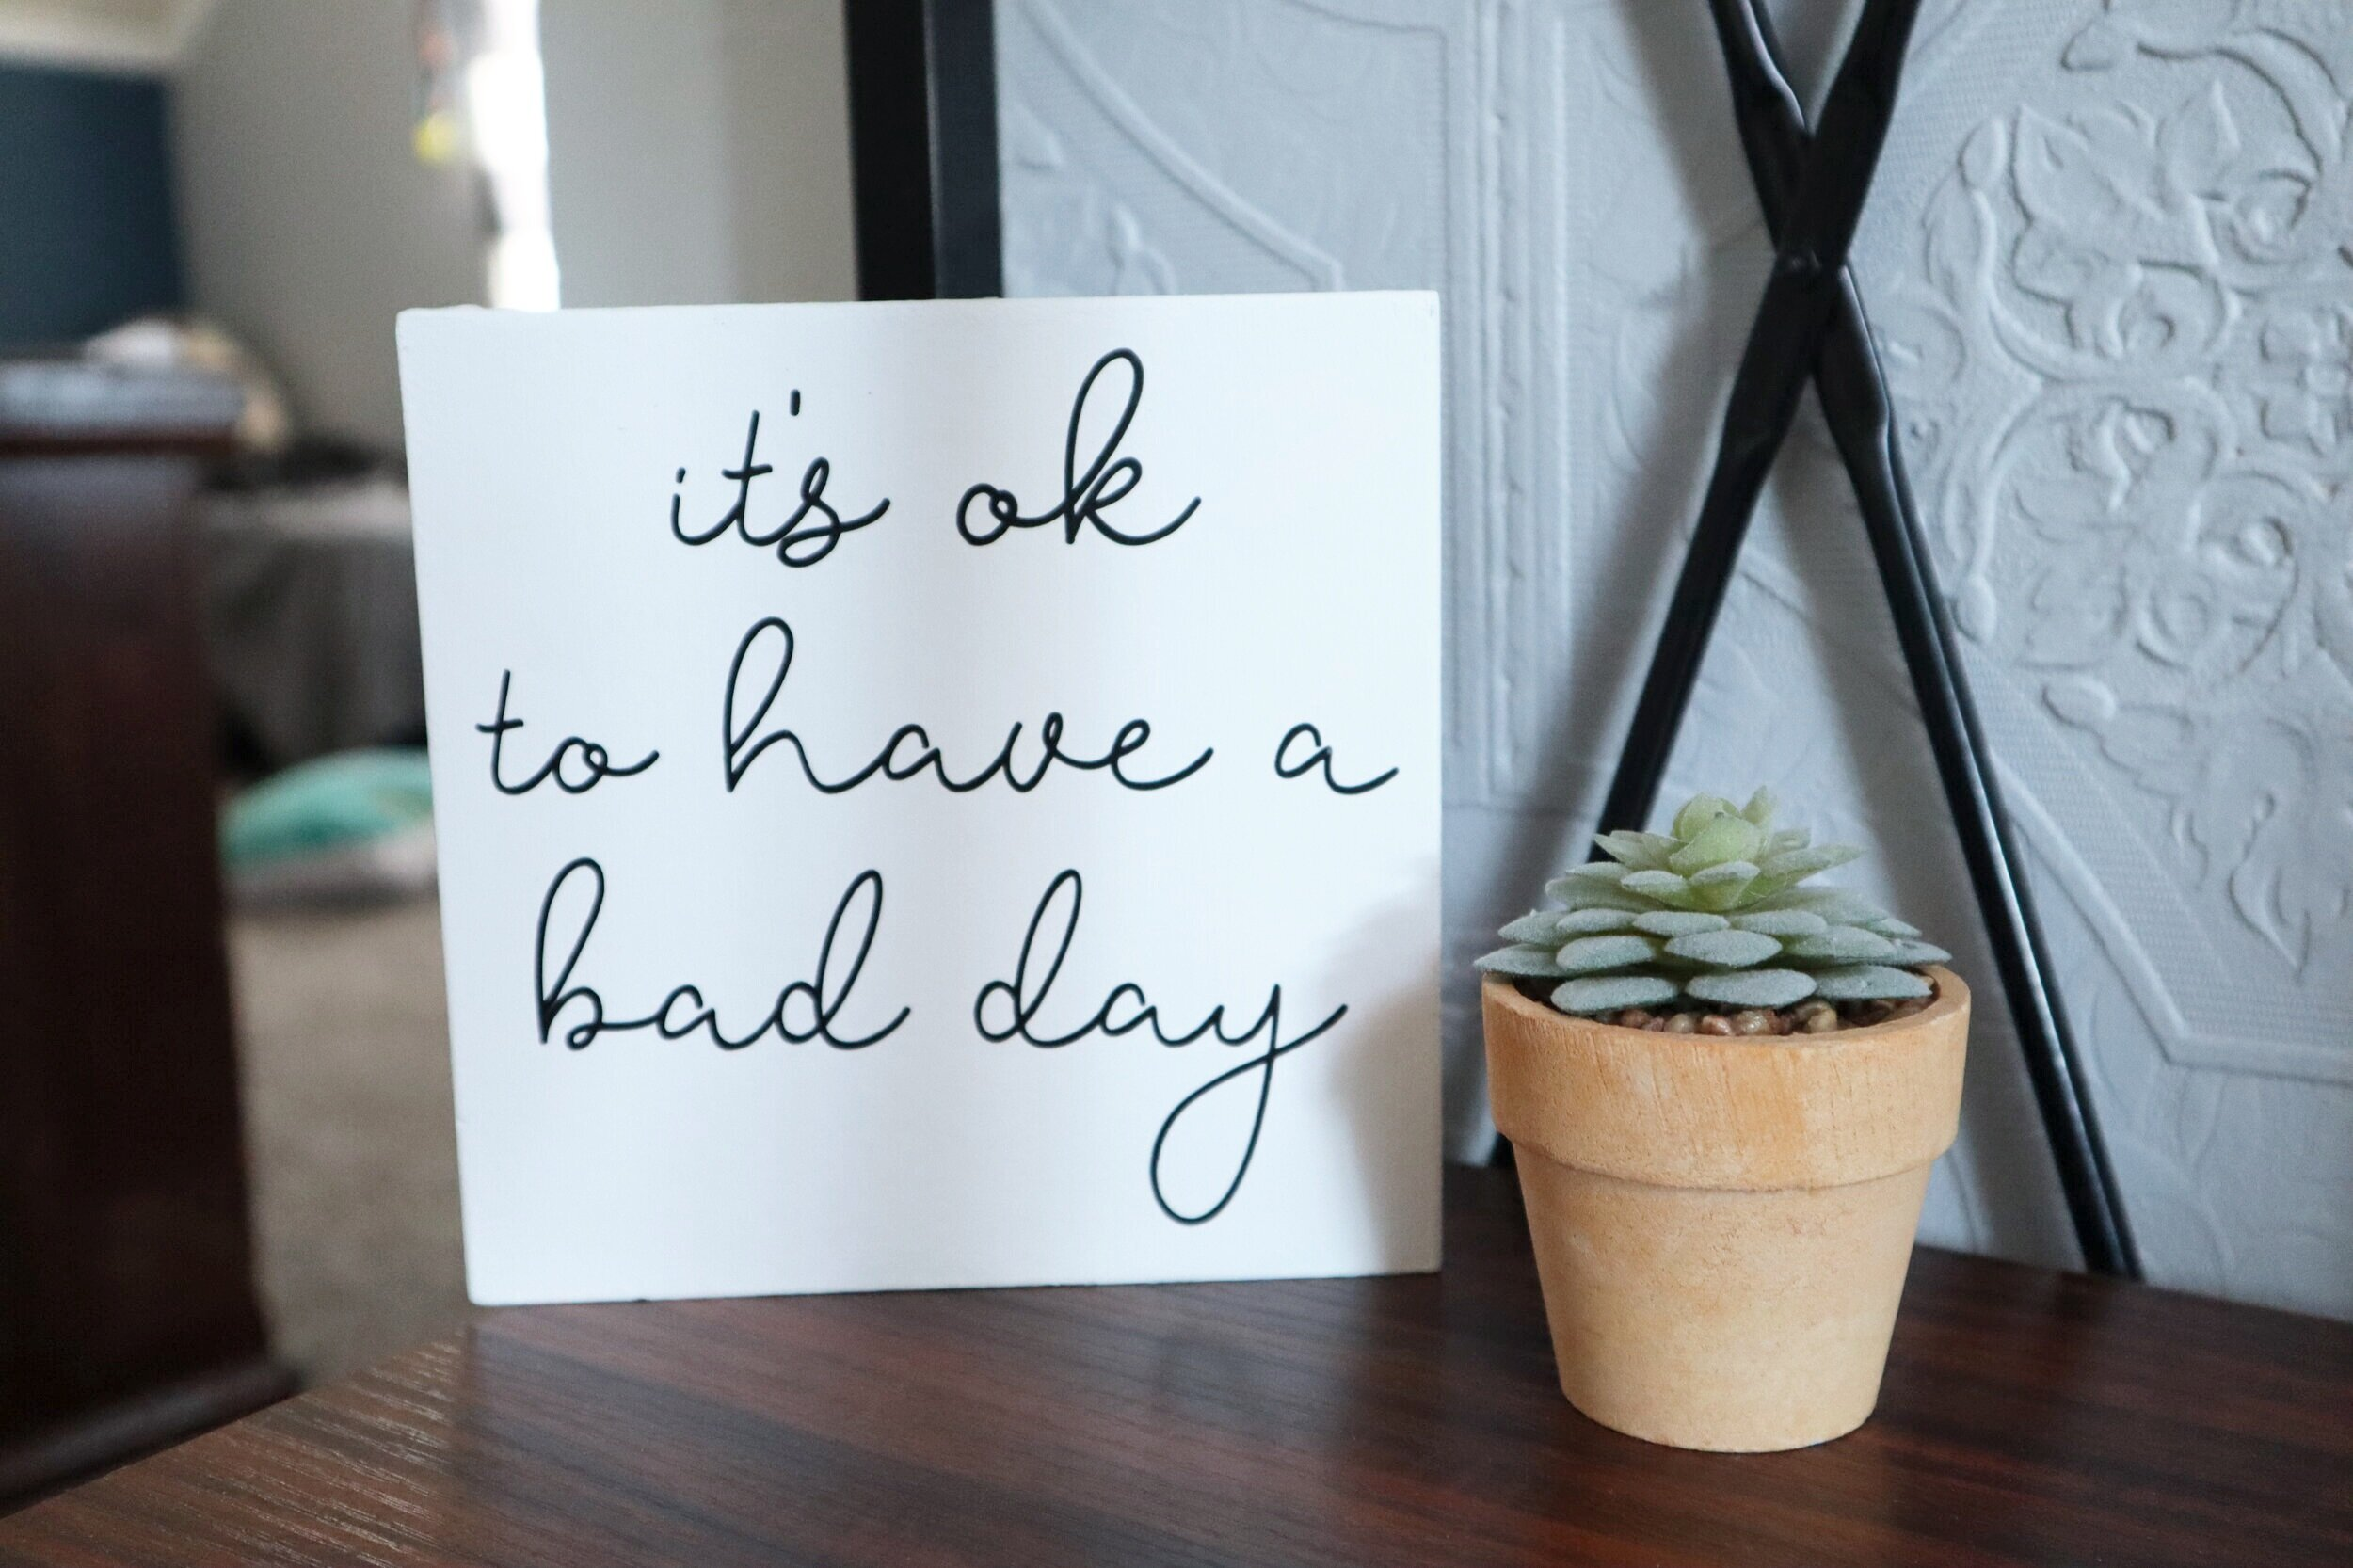 DIY dollar store sign makeover. How to give a dollar tree seasonal free standing faux wood sign a more modern look using your Cricut. DIY vinyl decal using your Cricut 'it's ok to have a bad day' diy sign.